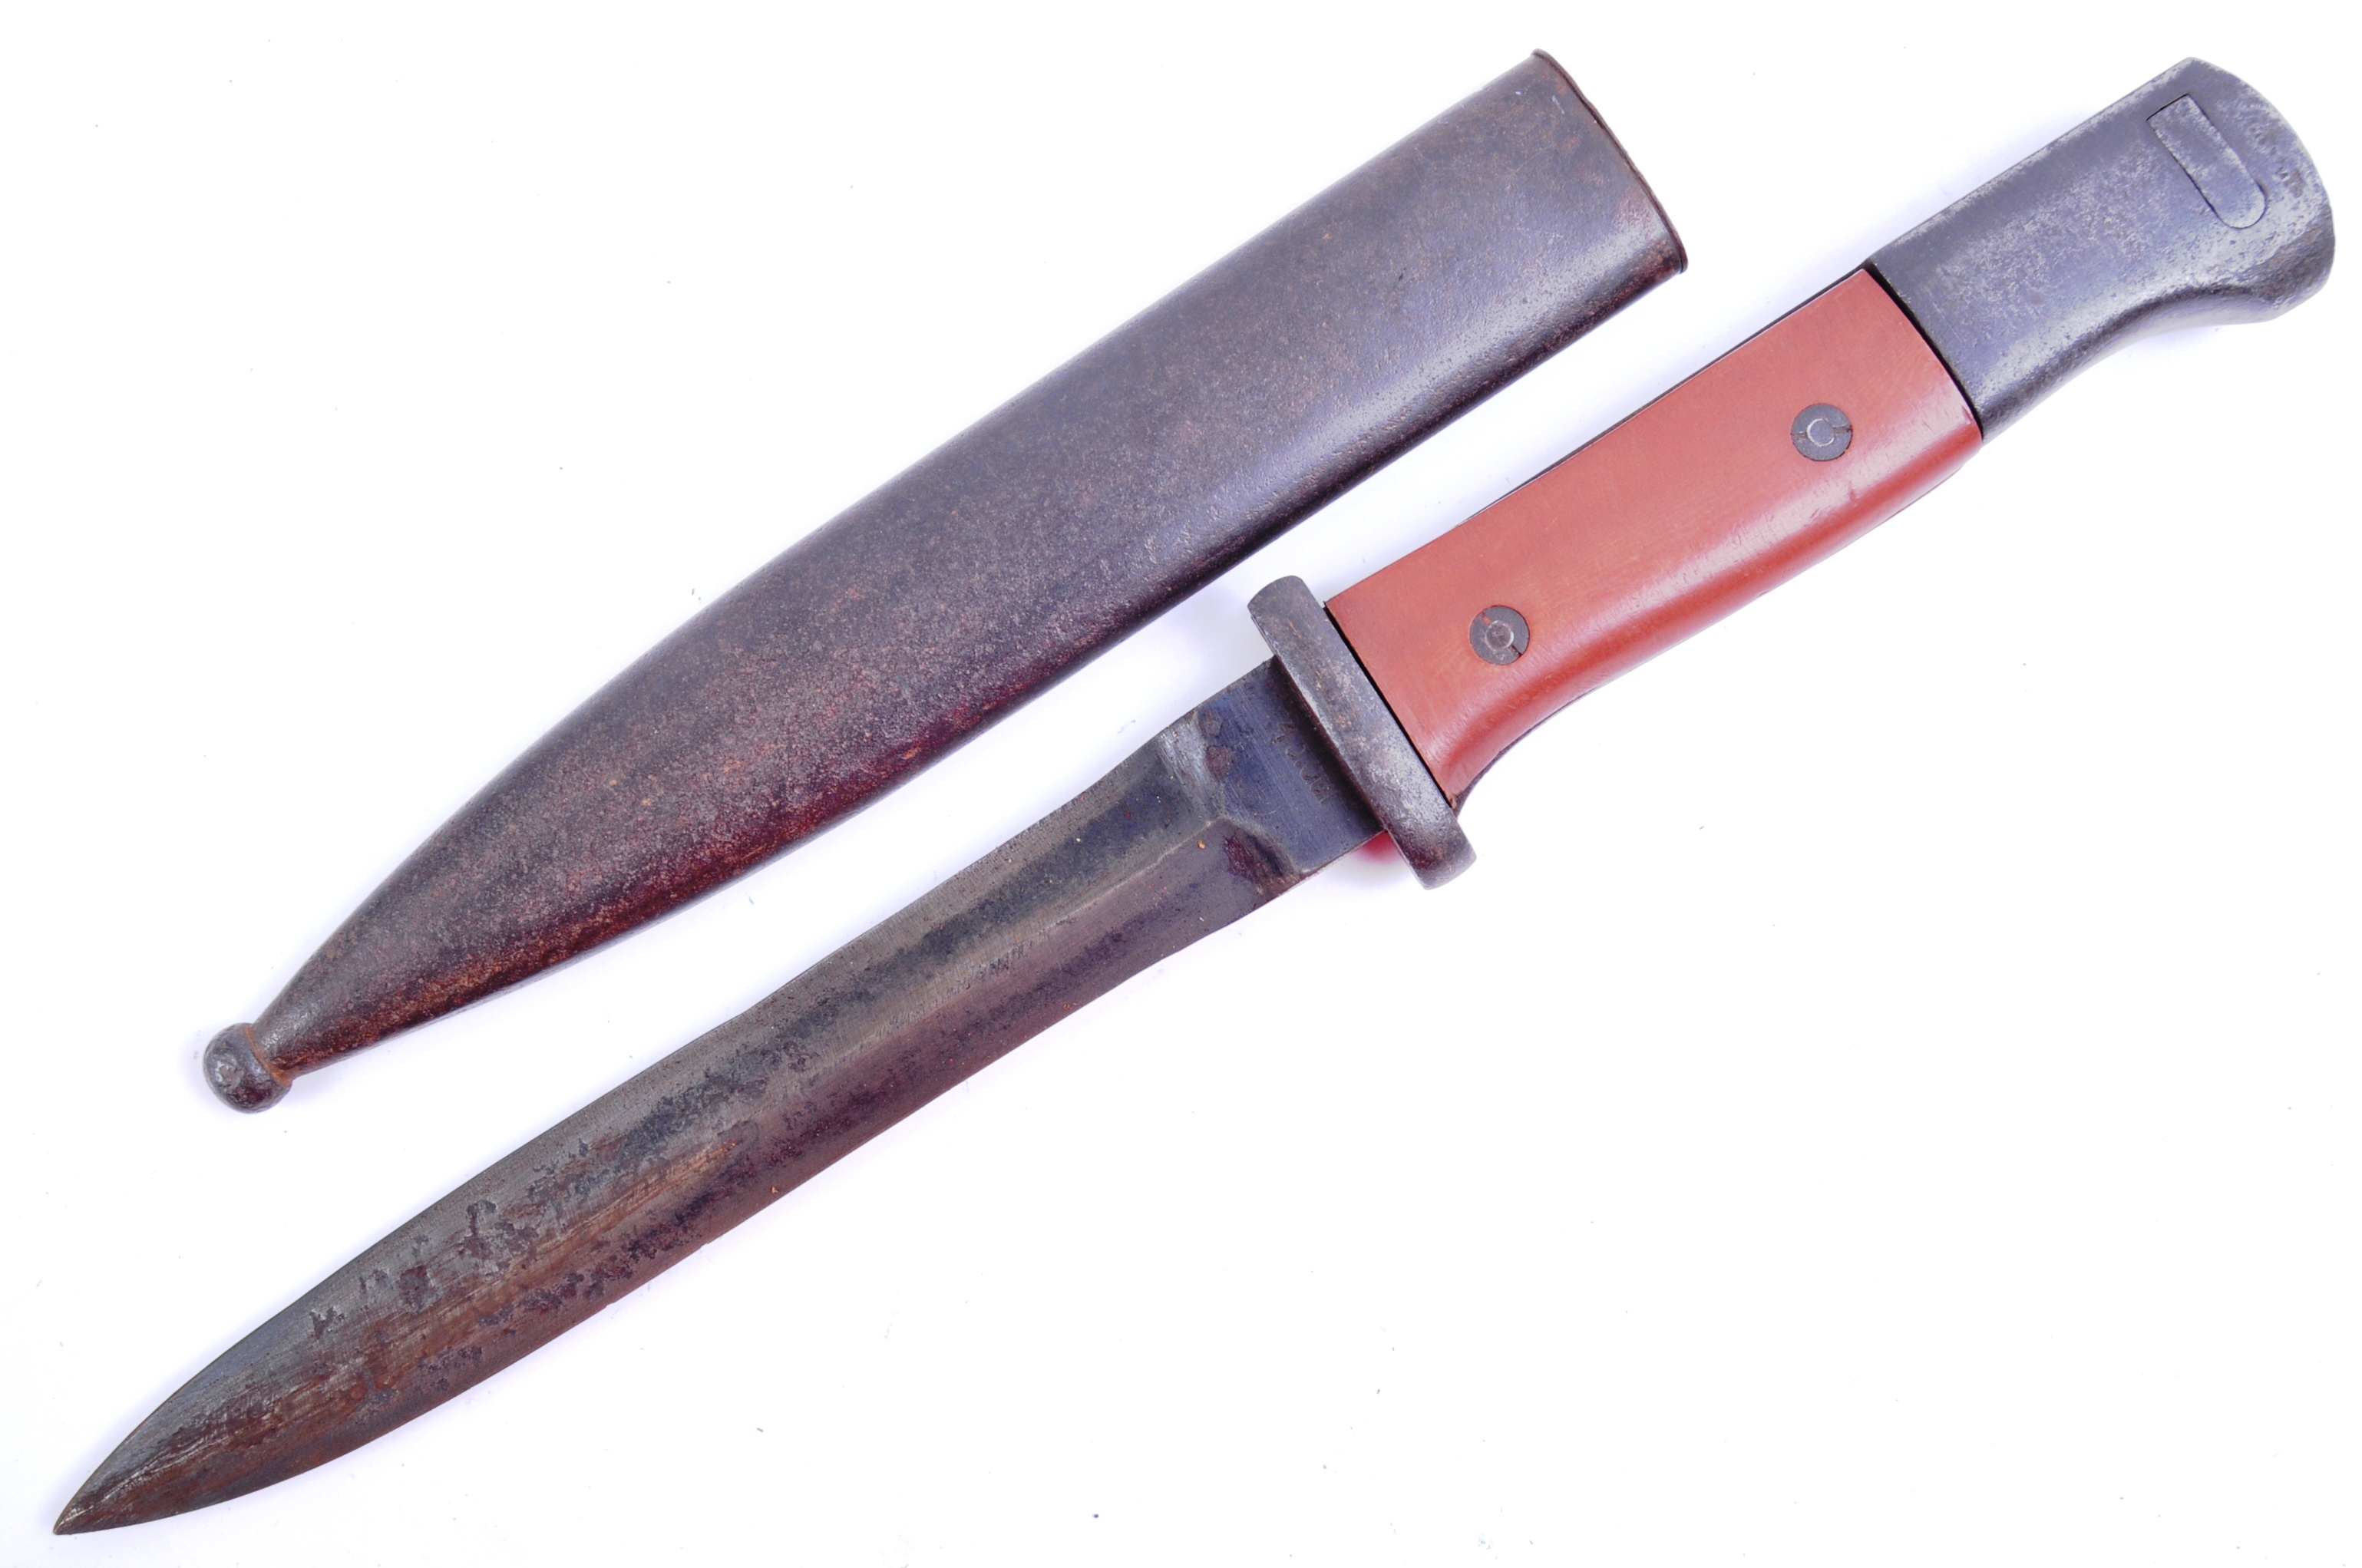 A WWII Second World War Third Reich Nazi German trench combat knife / boot knife styled on an SG84/